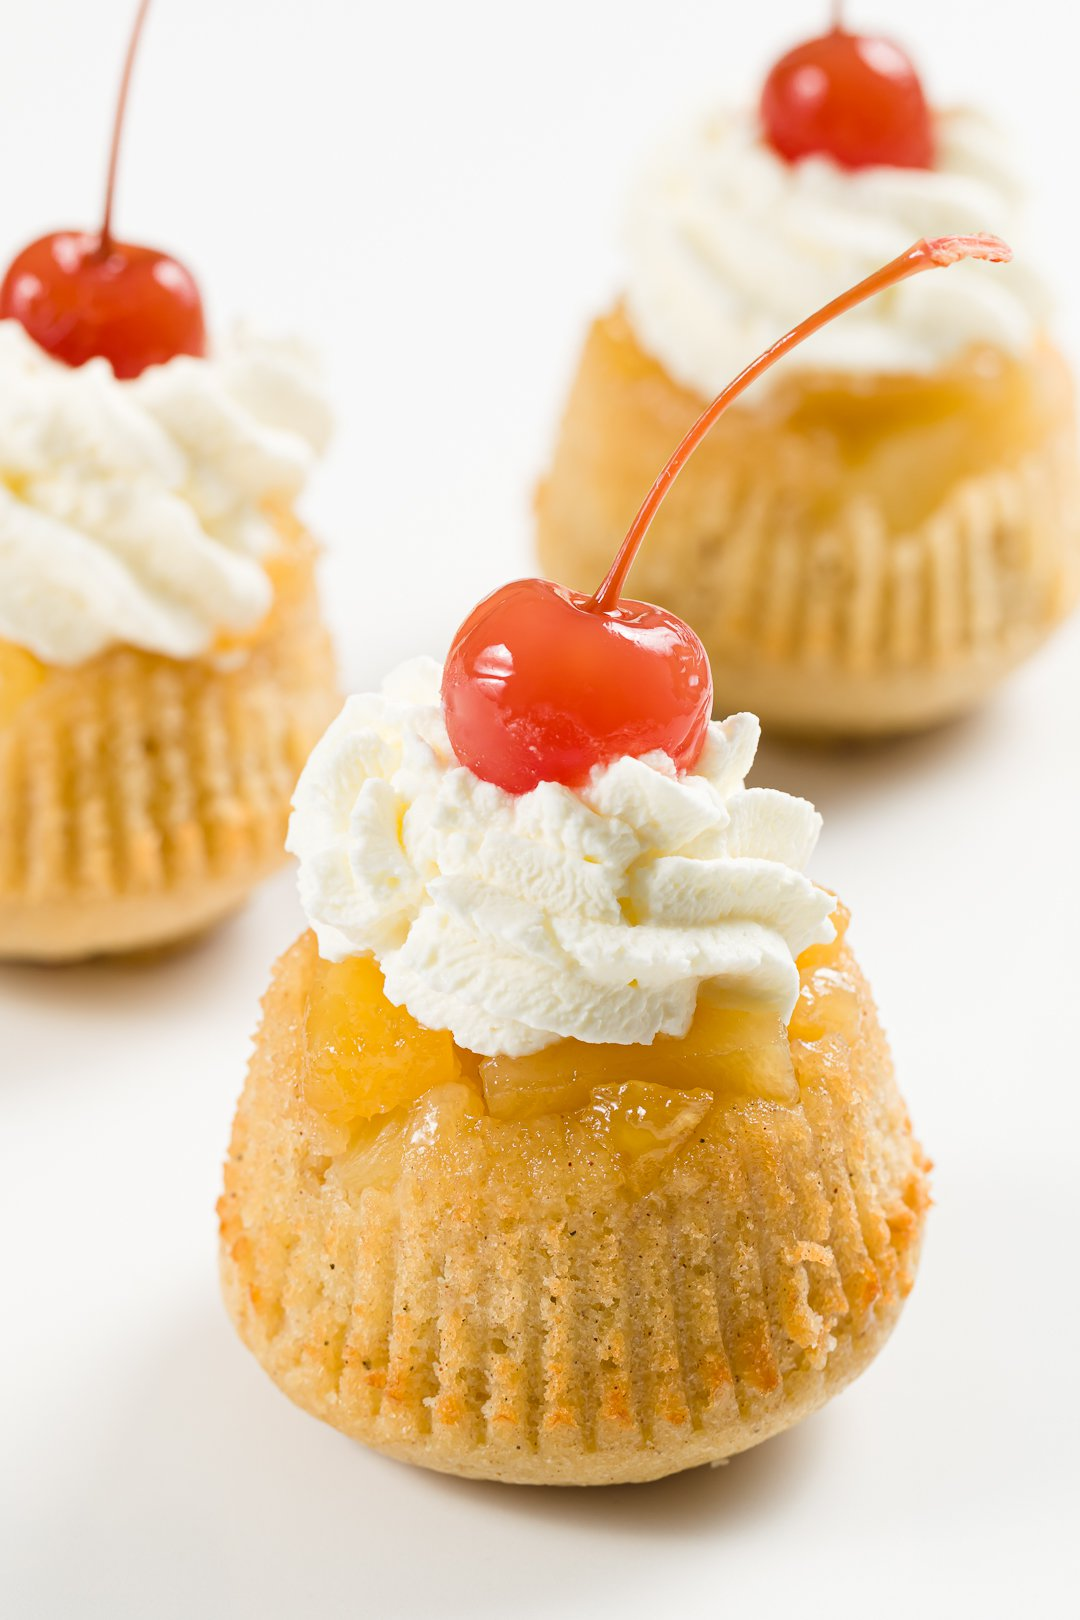 close-up view of a pineapple upside-down cupcake topped with whipped cream and a maraschino cherry